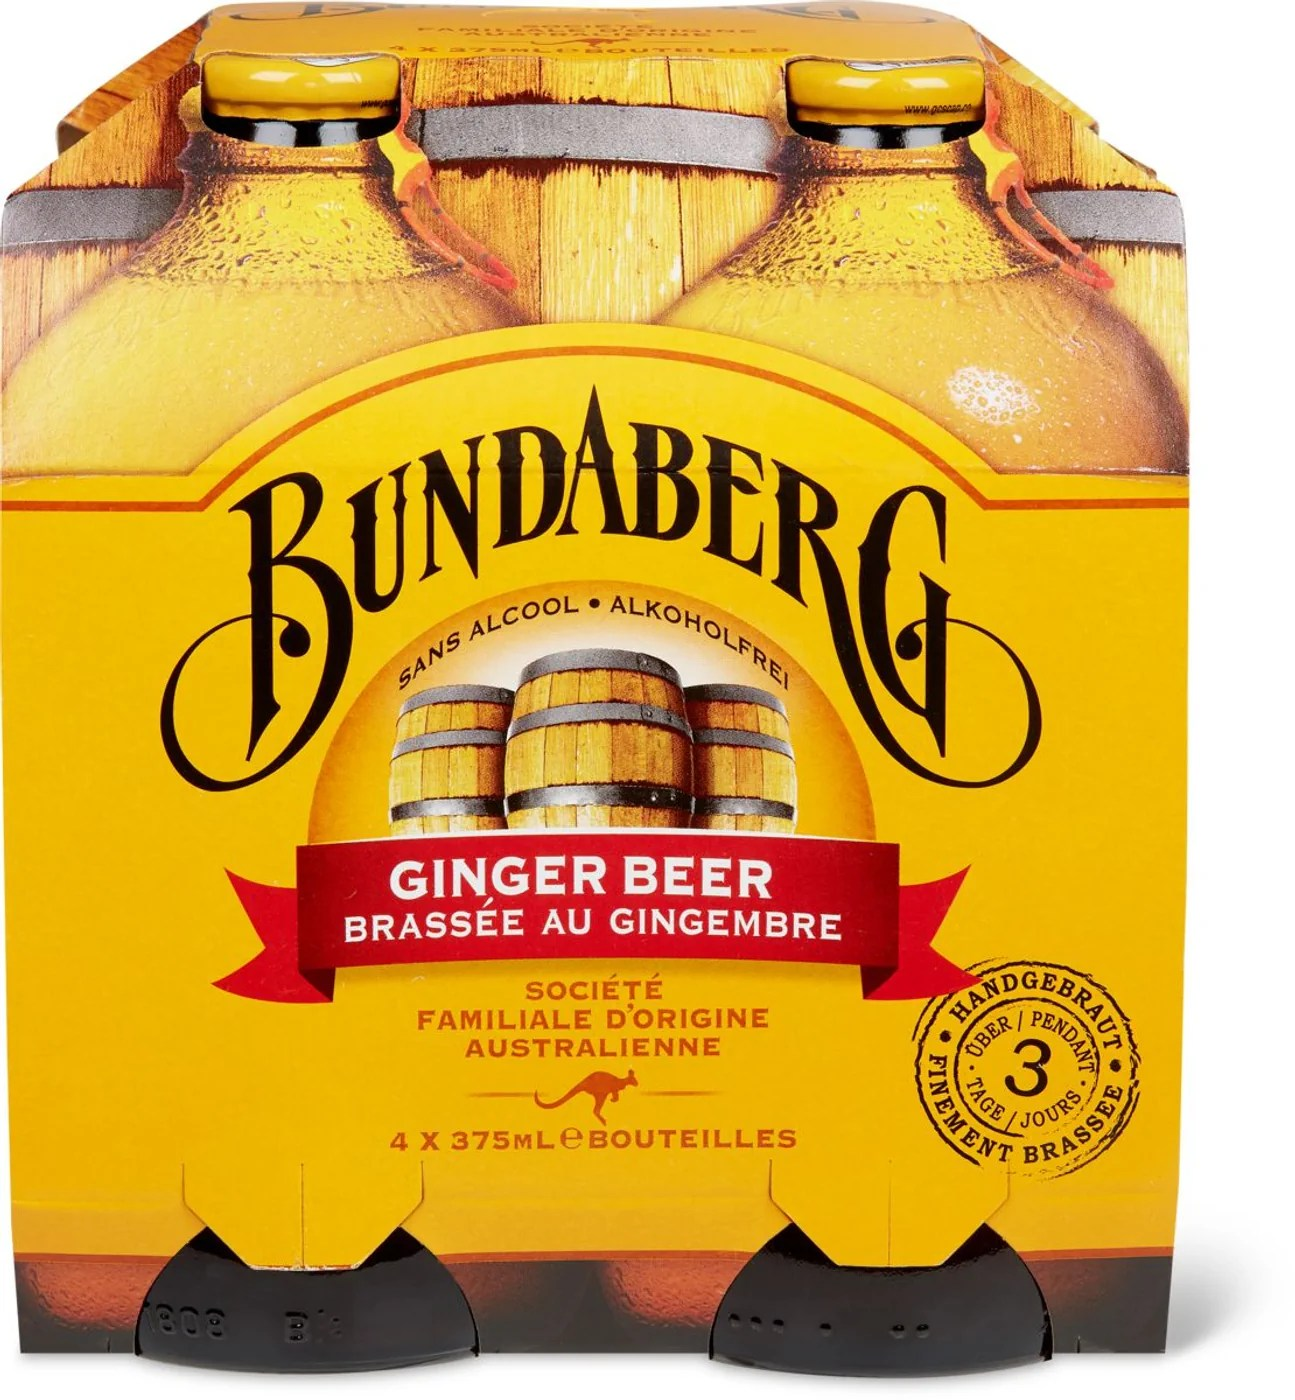 Bundaberg Ginger Beer Migros